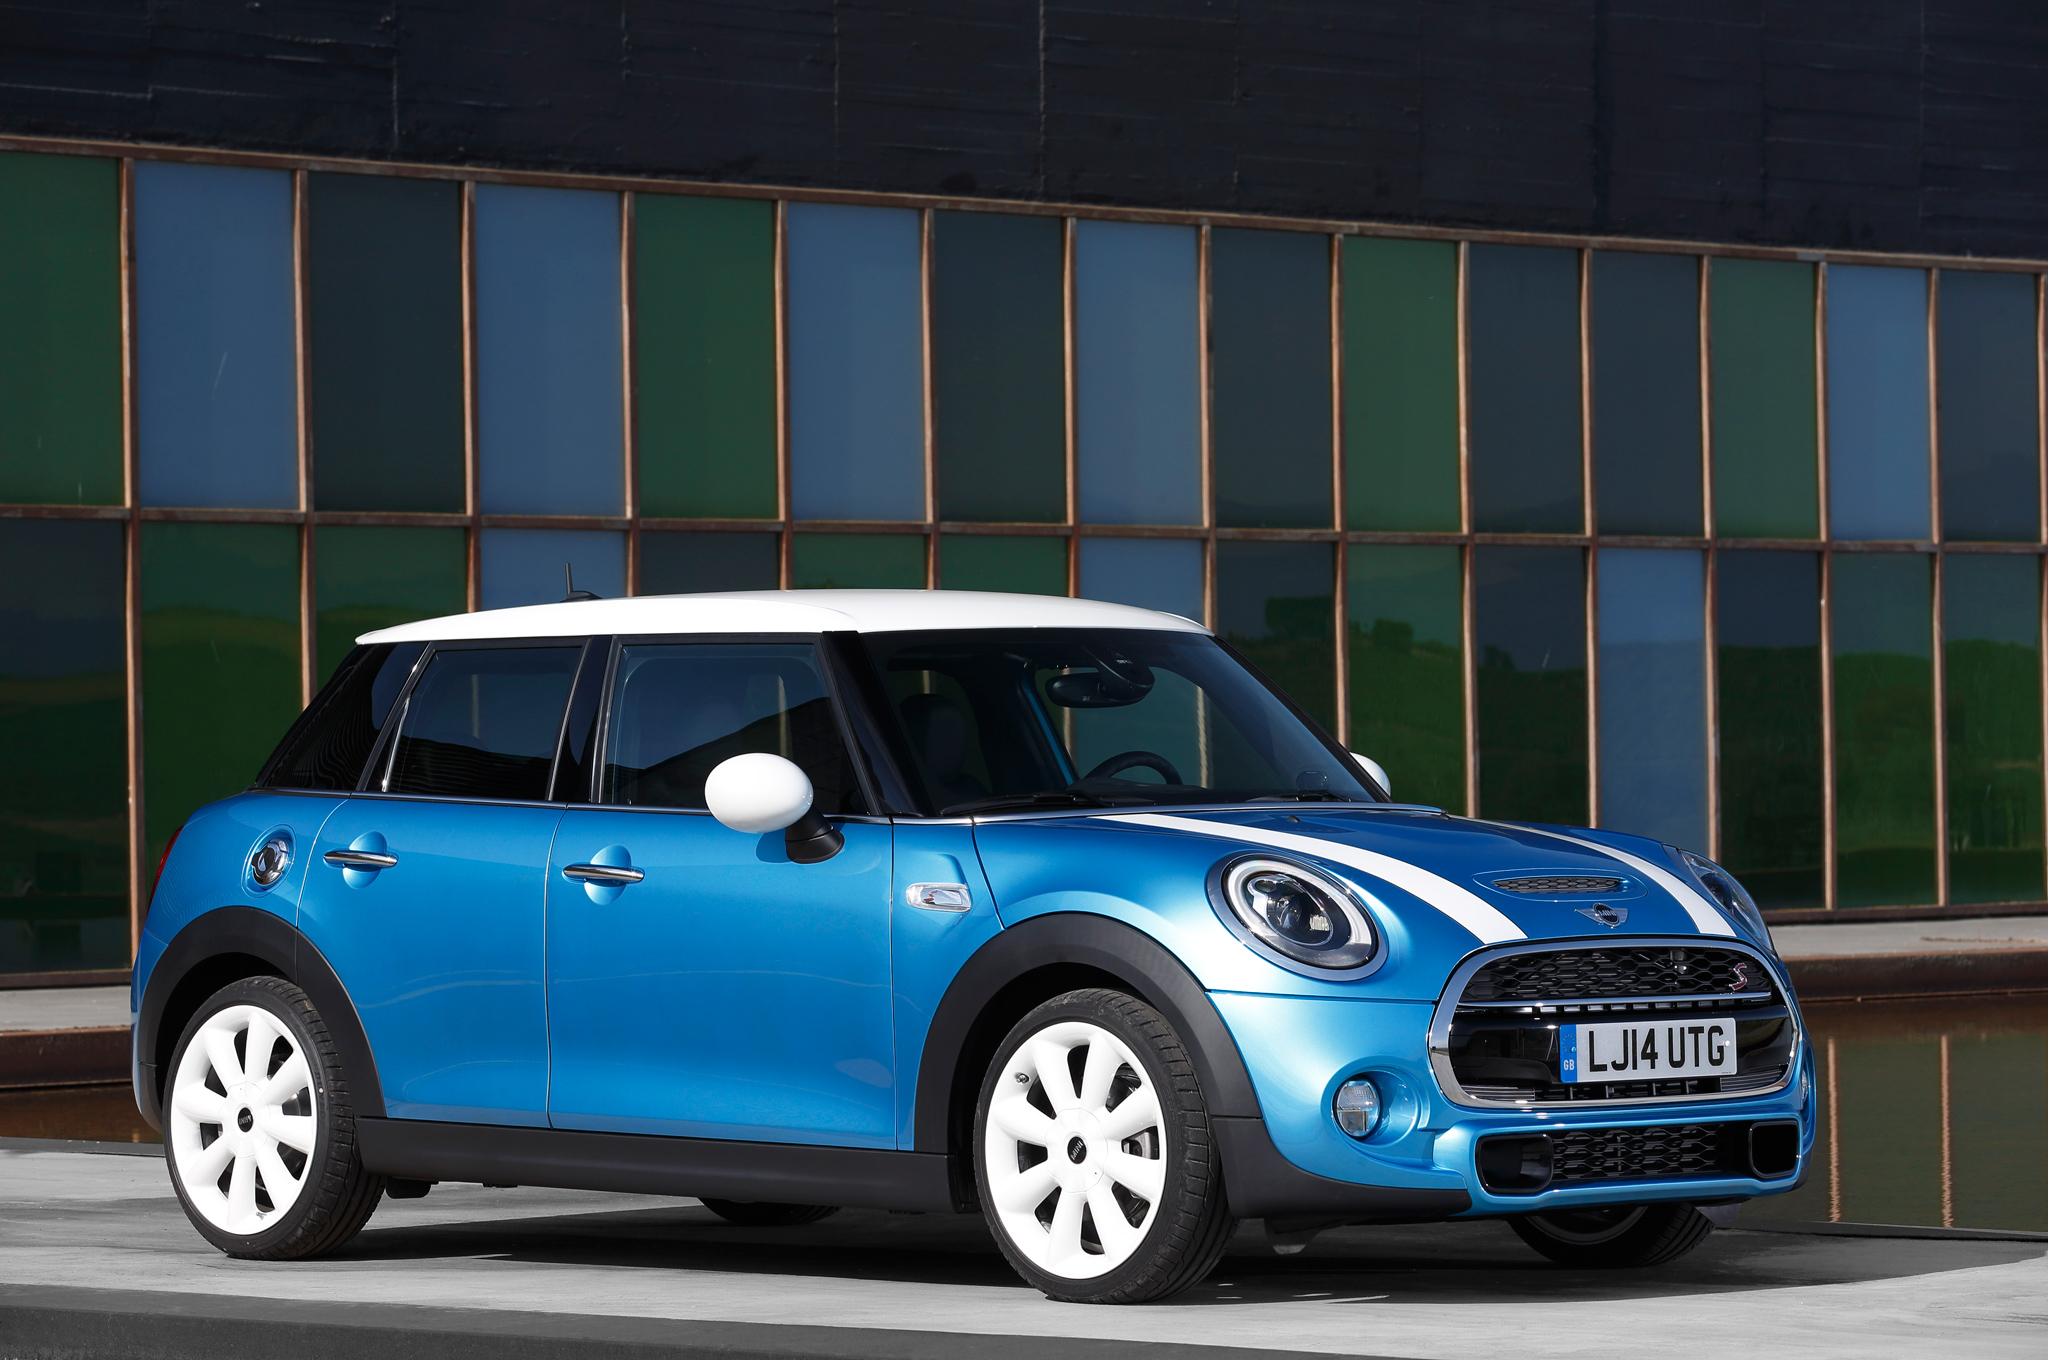 2015 Mini Cooper Hardtop 4-Door Exterior Profile